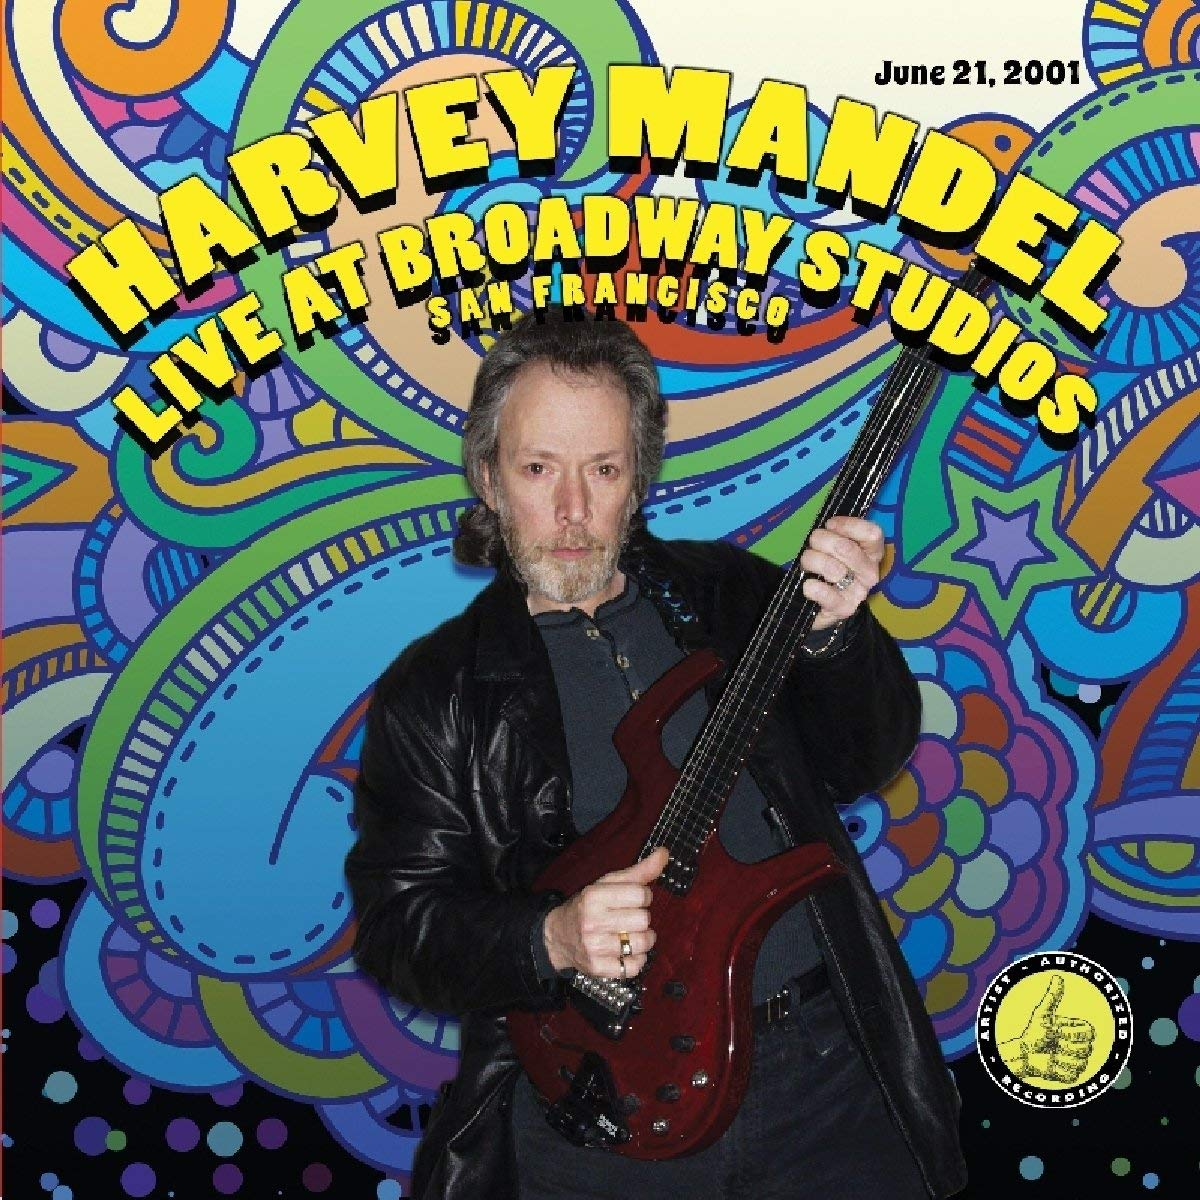 Live at Broadway Studios, San Francisco 2001 Cover art